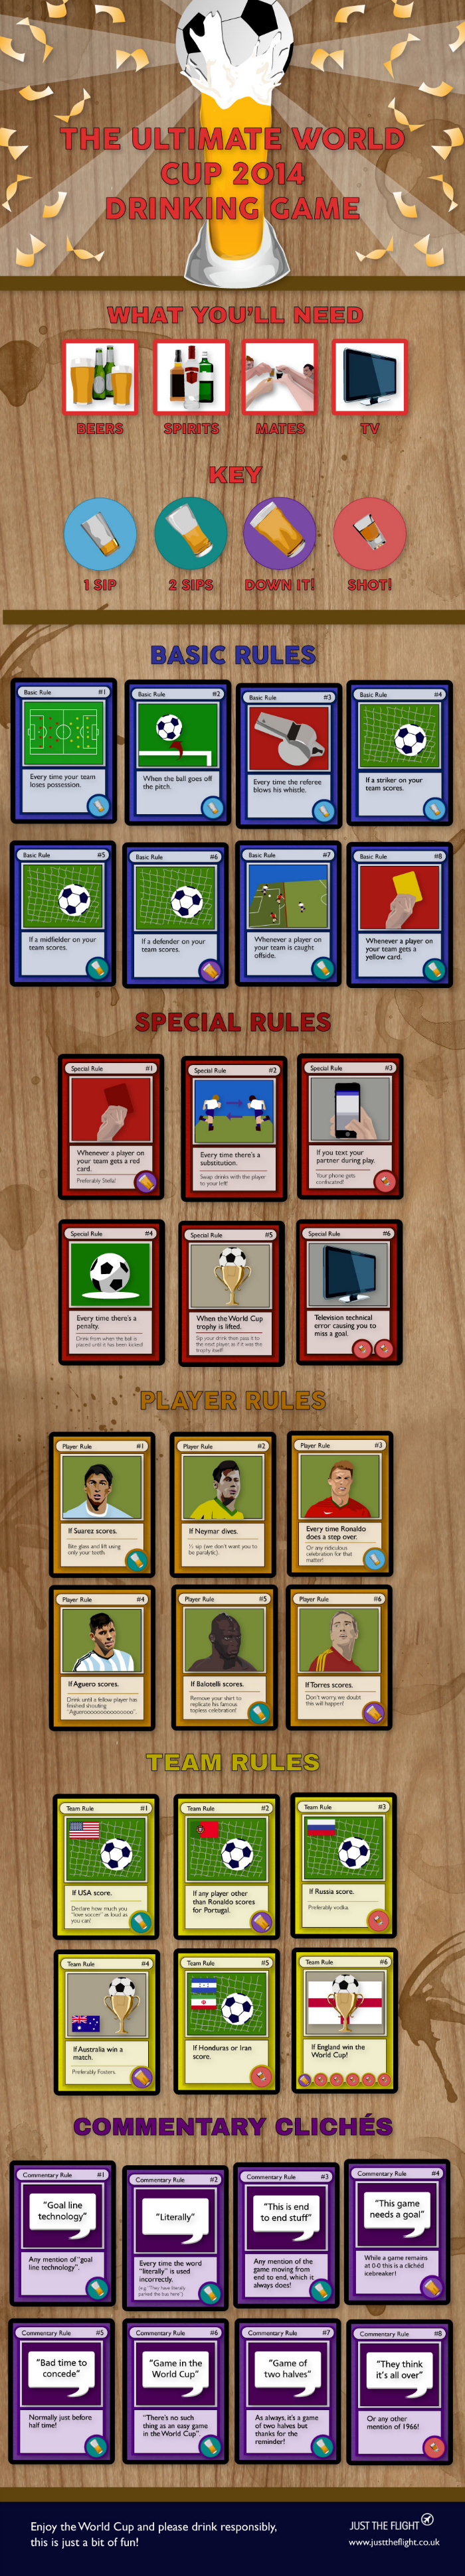 world cup drinking game 700 The Ultimate World Cup 2014 Drinking Game [INFOGRAPHIC]